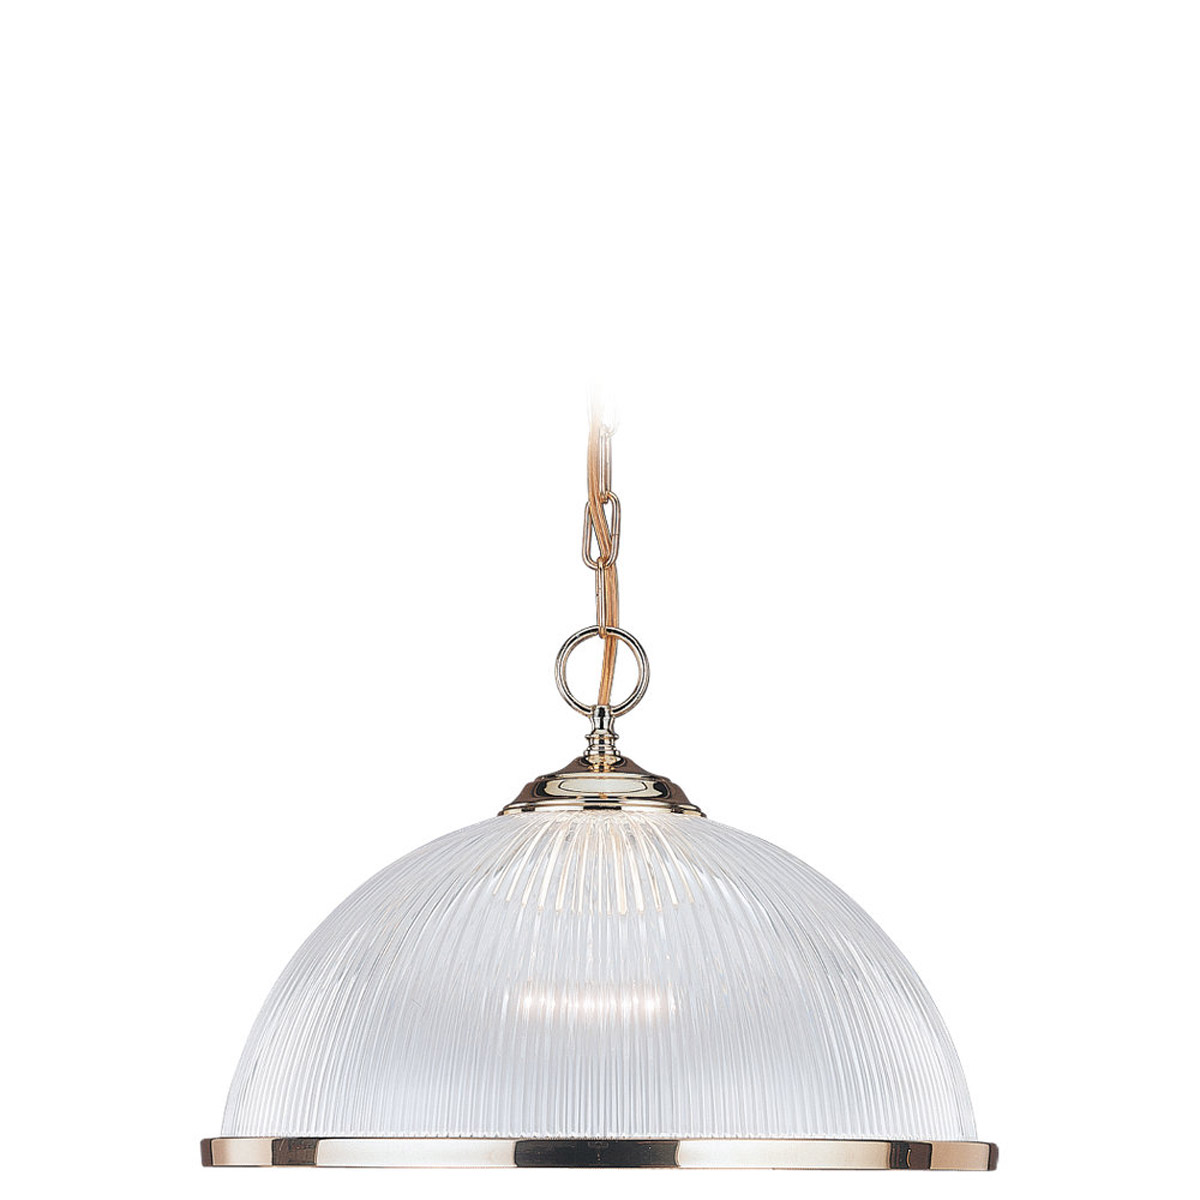 Sea Gull Lighting Signature 1 Light Pendant in Polished Brass 6641-02